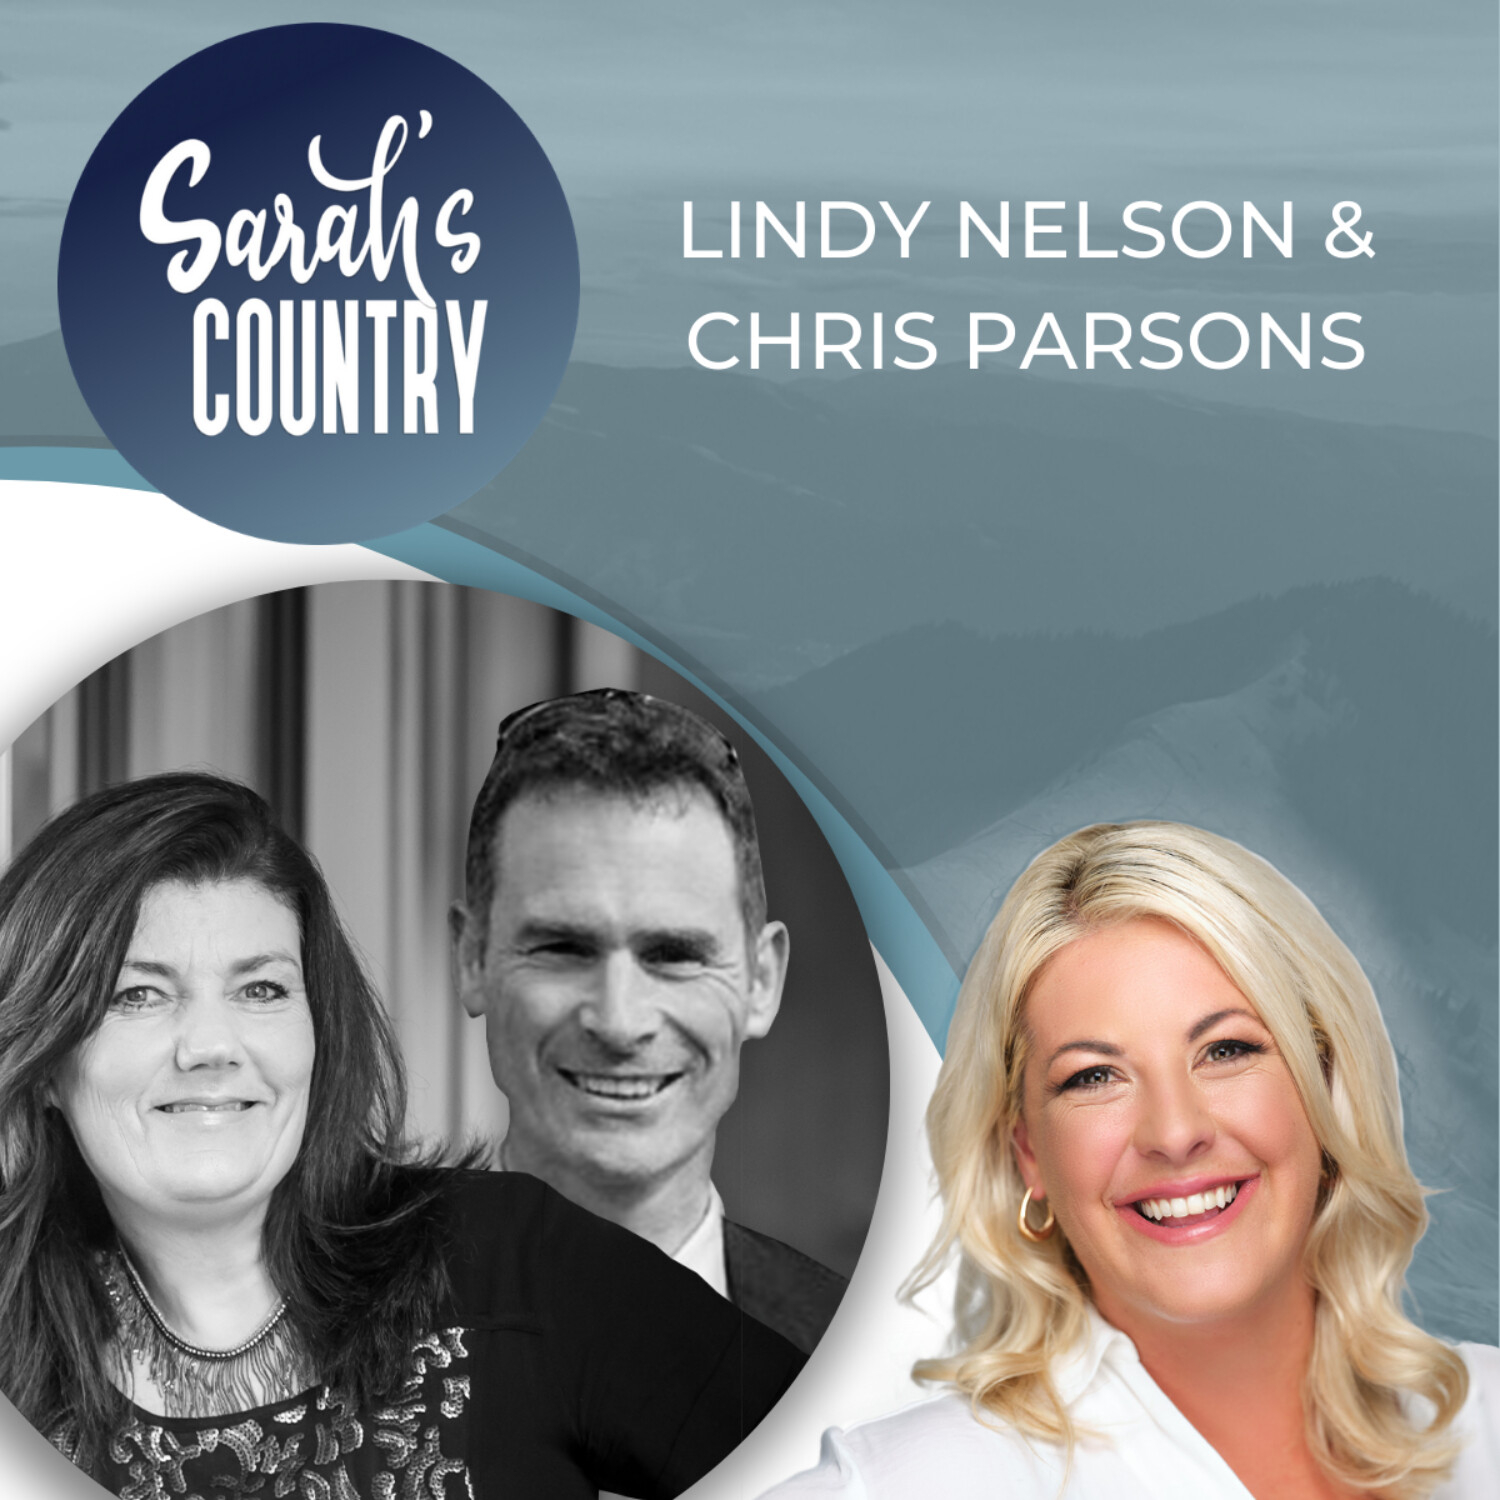 """2020 review and look ahead to 2021"" with Lindy Nelson & Chris Parsons"